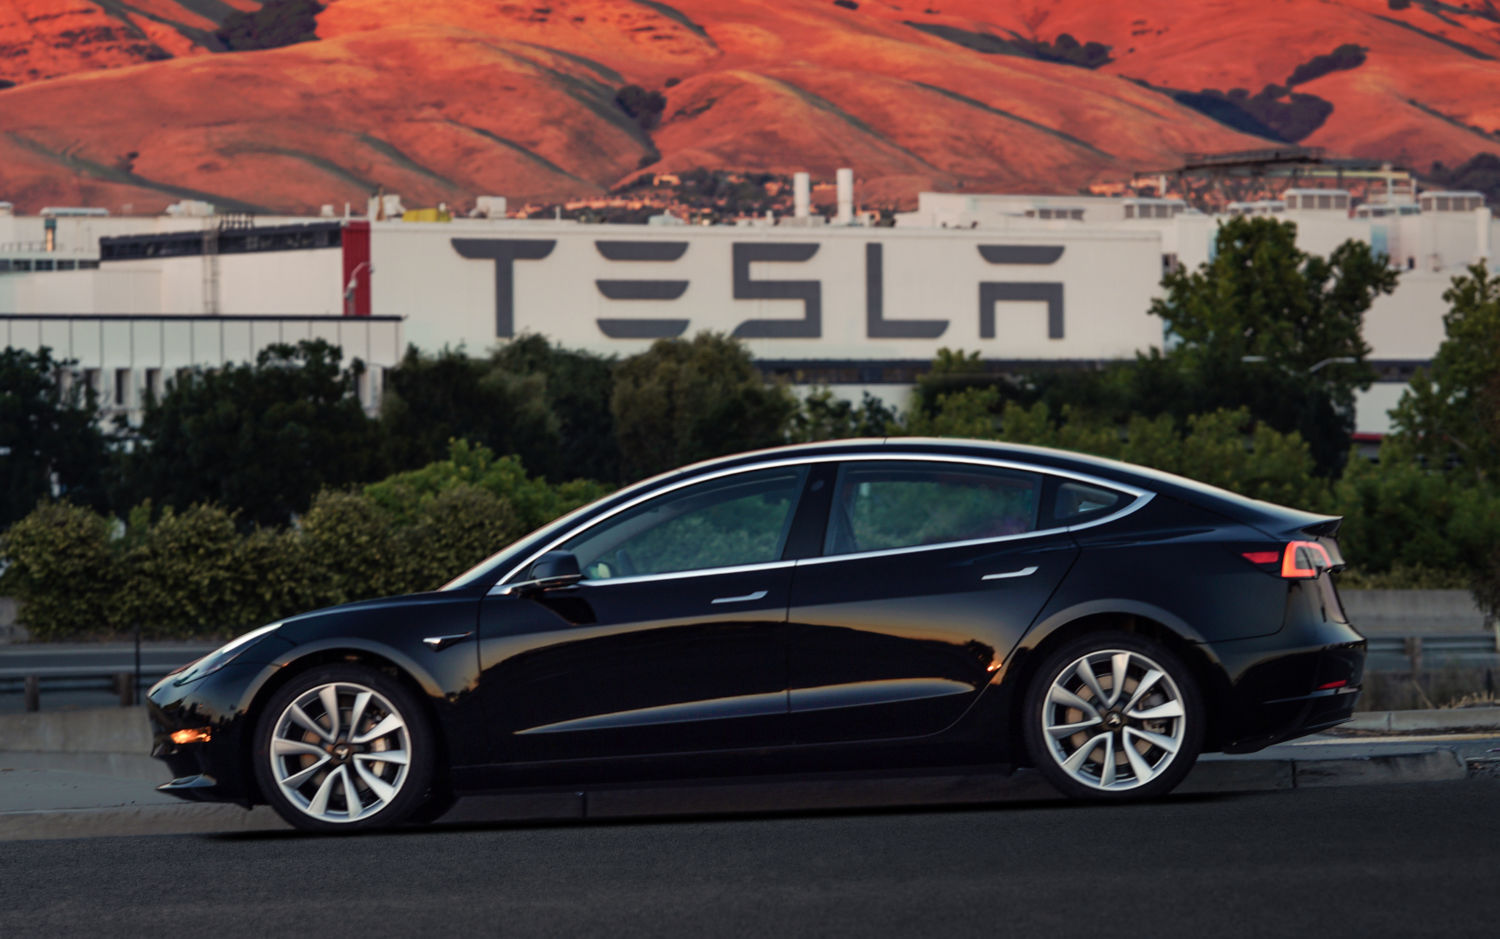 Tesla recalls 11000 Model X SUVs over possible seat issue